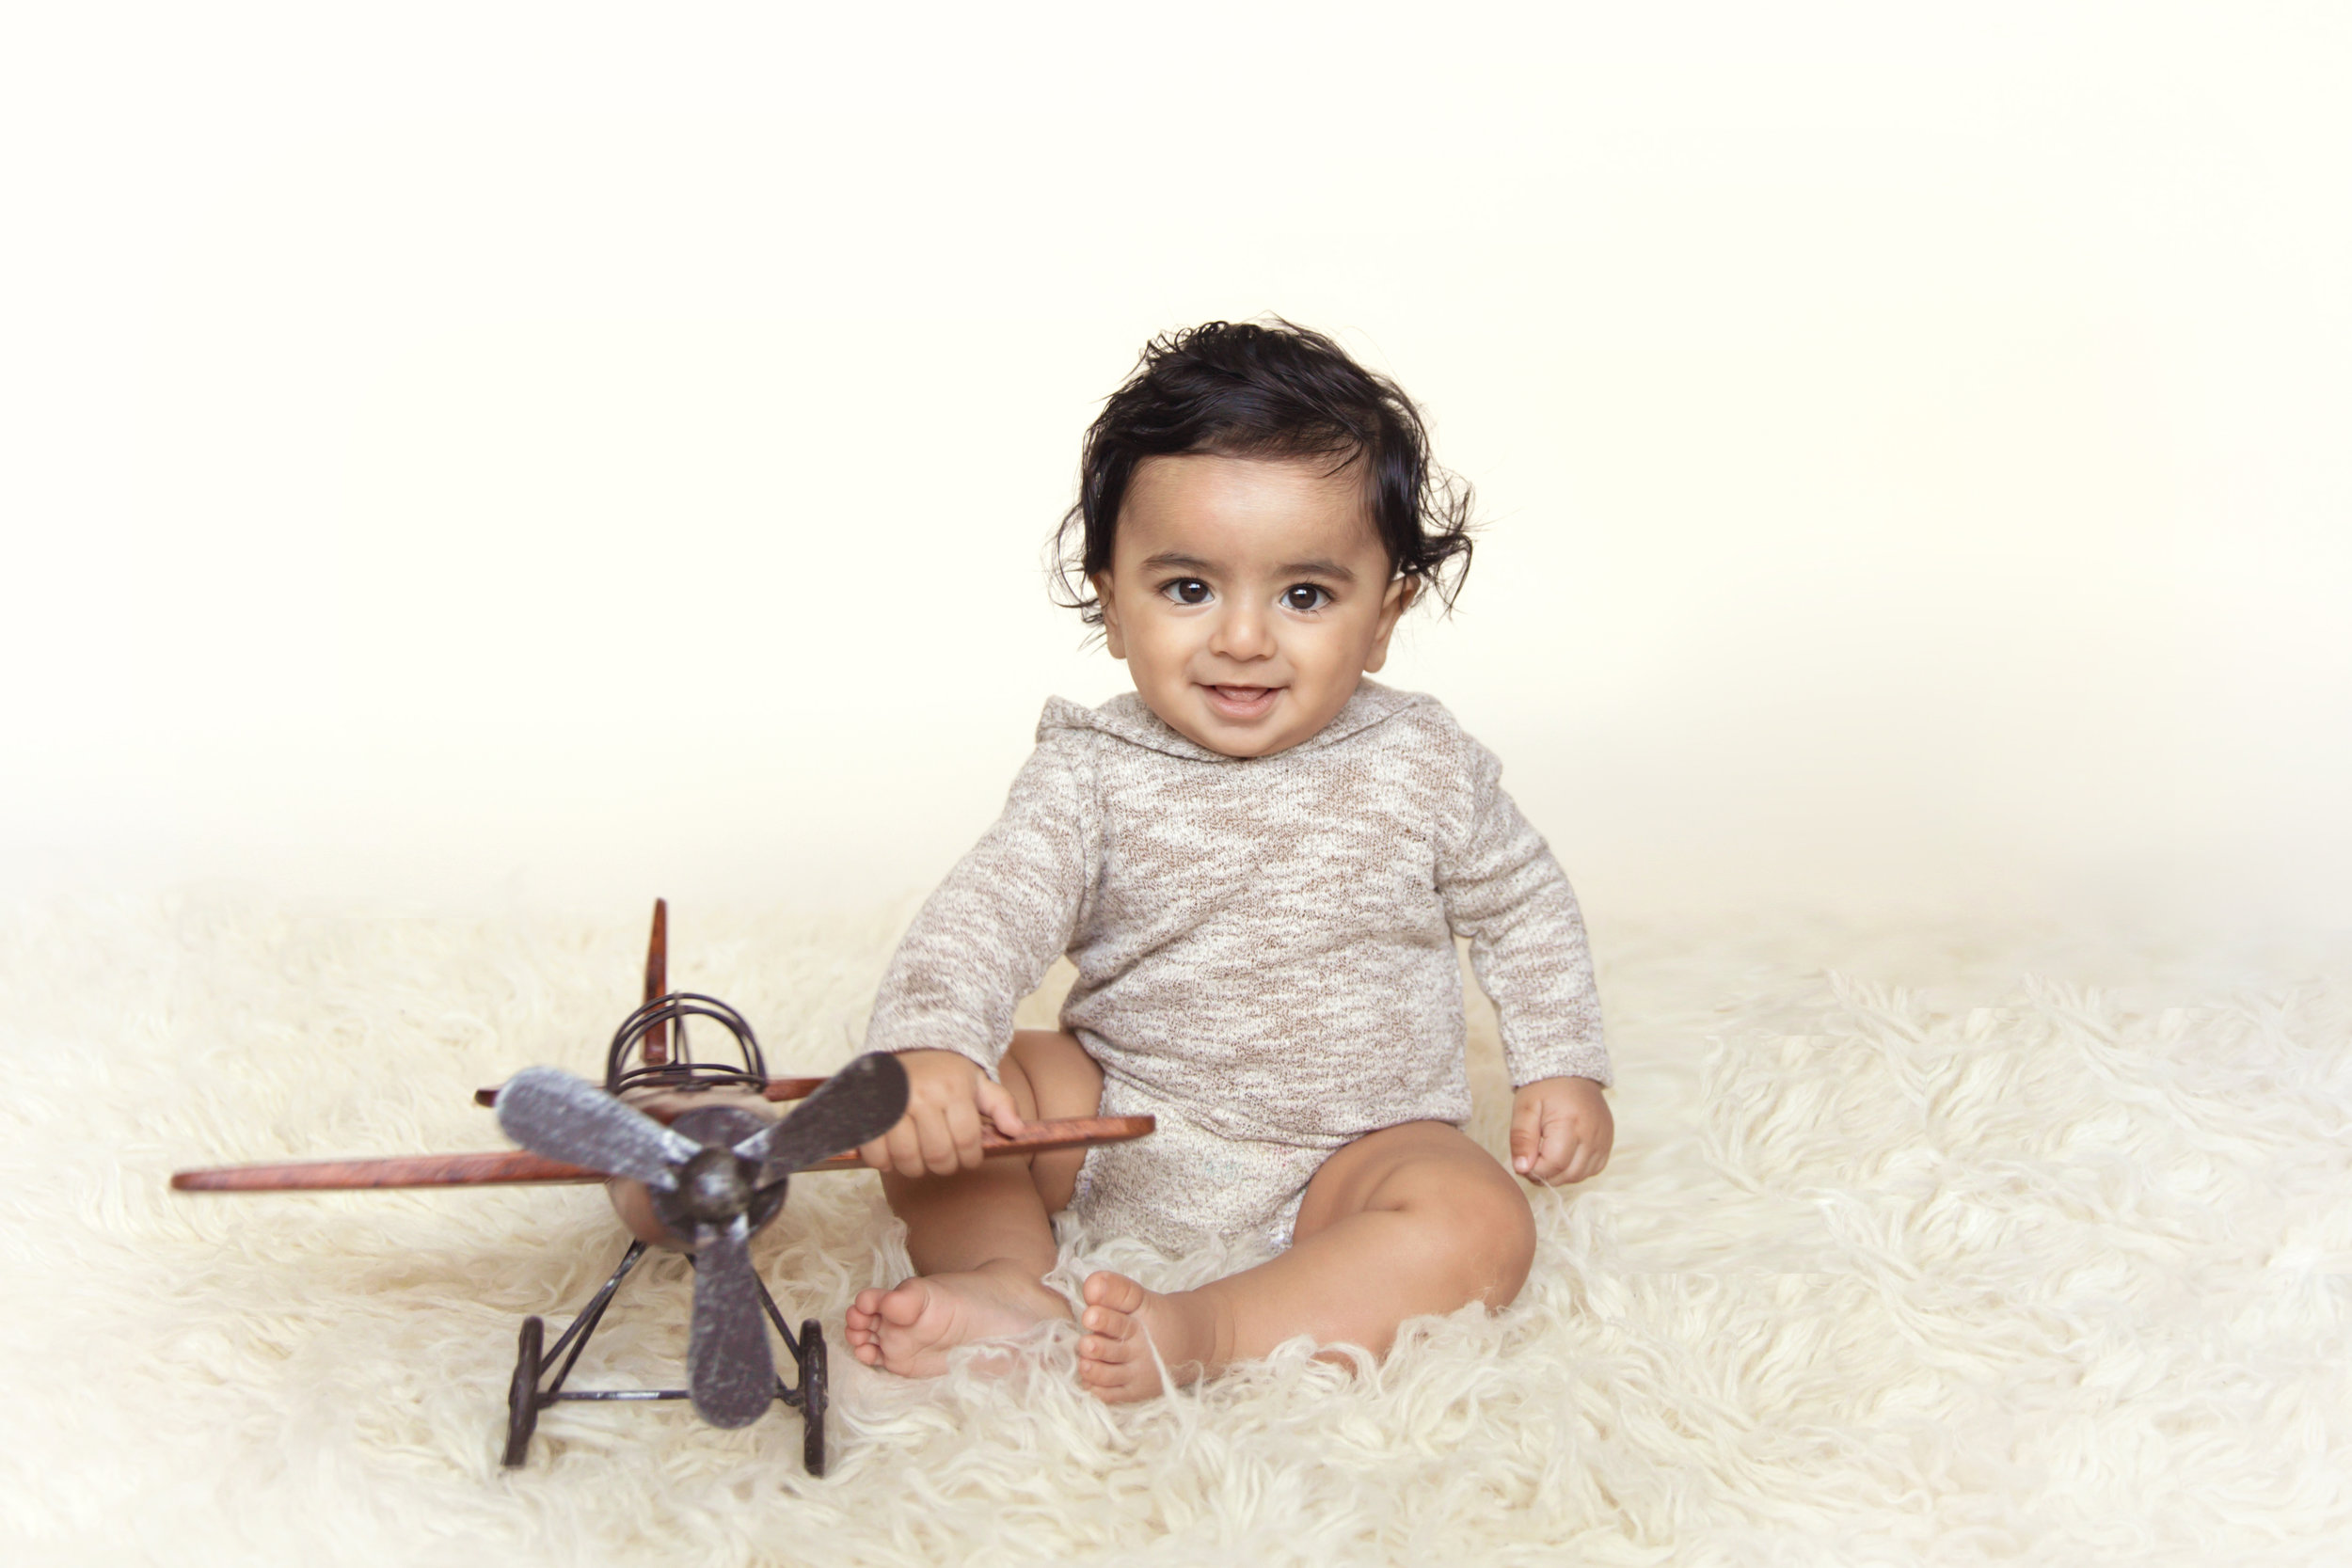 Baby boy sitting on a flokati rug with an airplane and smiling. Calgary baby photographer. Milashka Photography